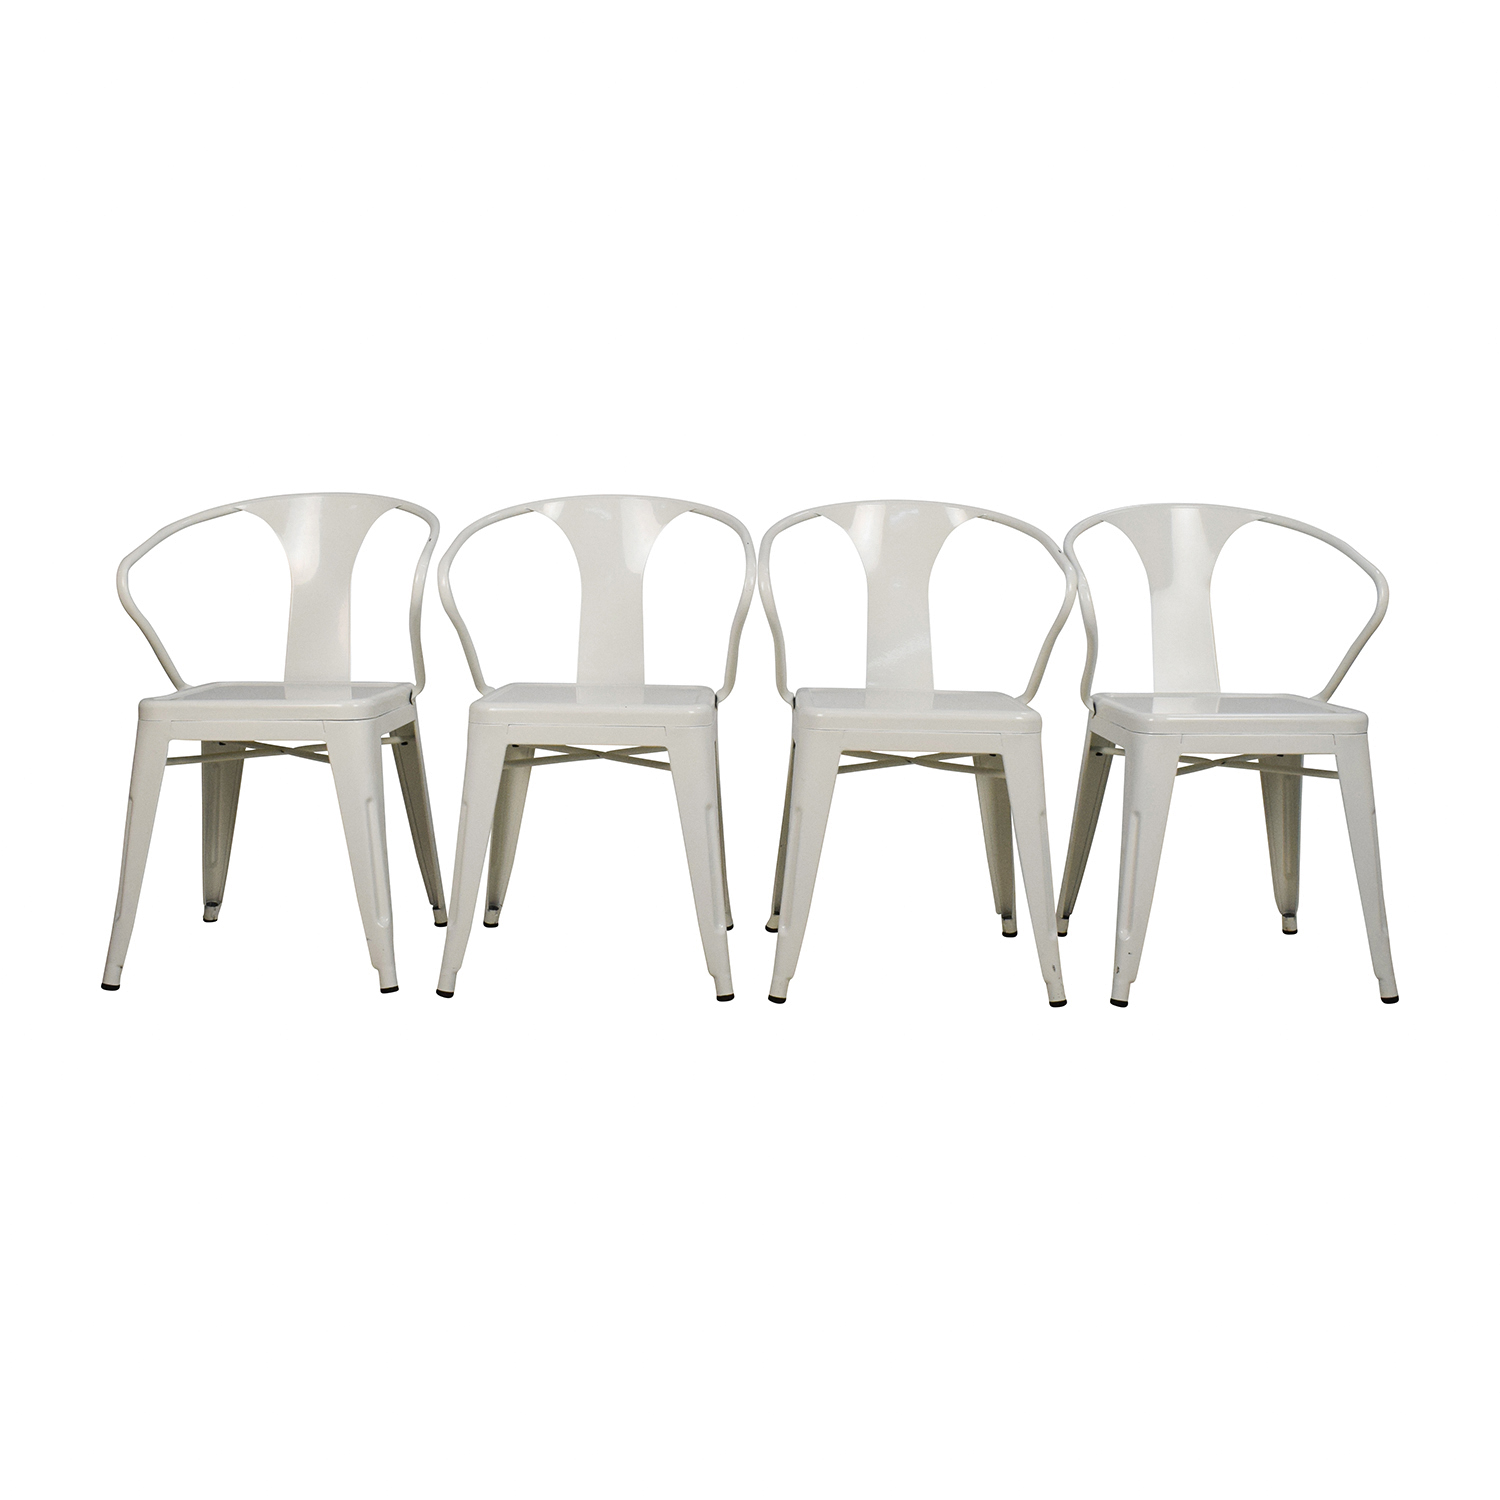 Cool 76 Off Overstock Overstock Set Of Four White European Chairs Chairs Unemploymentrelief Wooden Chair Designs For Living Room Unemploymentrelieforg